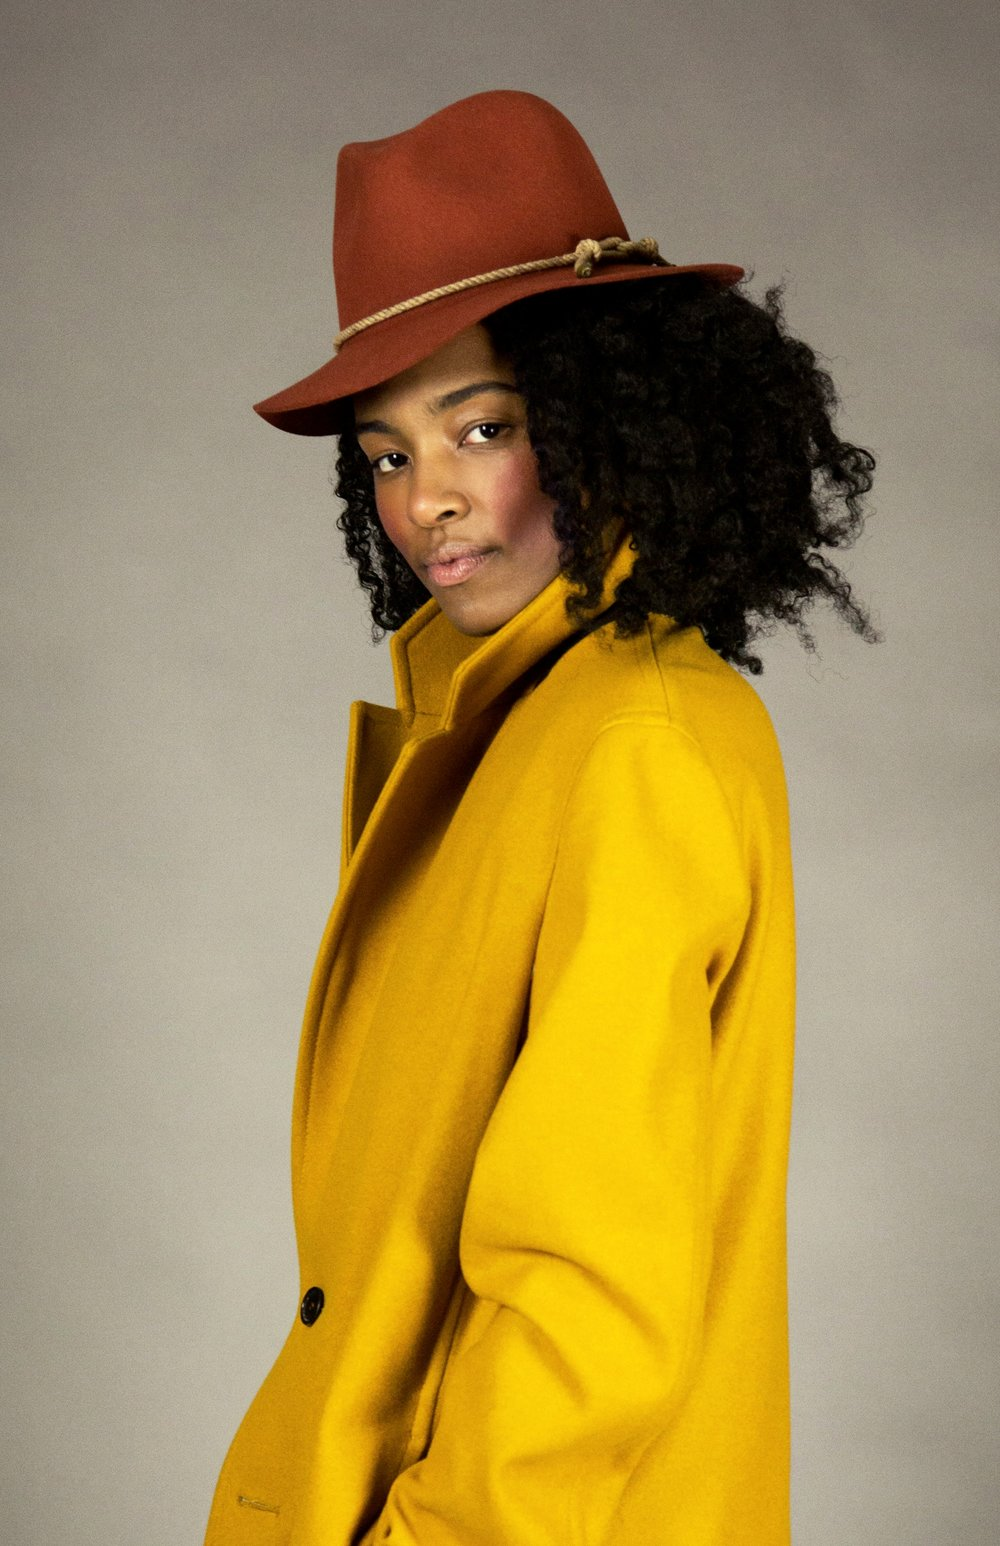 hat 1 rust  felted fedora with signature natural melange rope detail and brass metal tips. made in collaboration with bollman hats, the oldest hat manufacturer in america.  sizes 1-2  100% felted wool  100% cotton interior band in our signature khaki twill